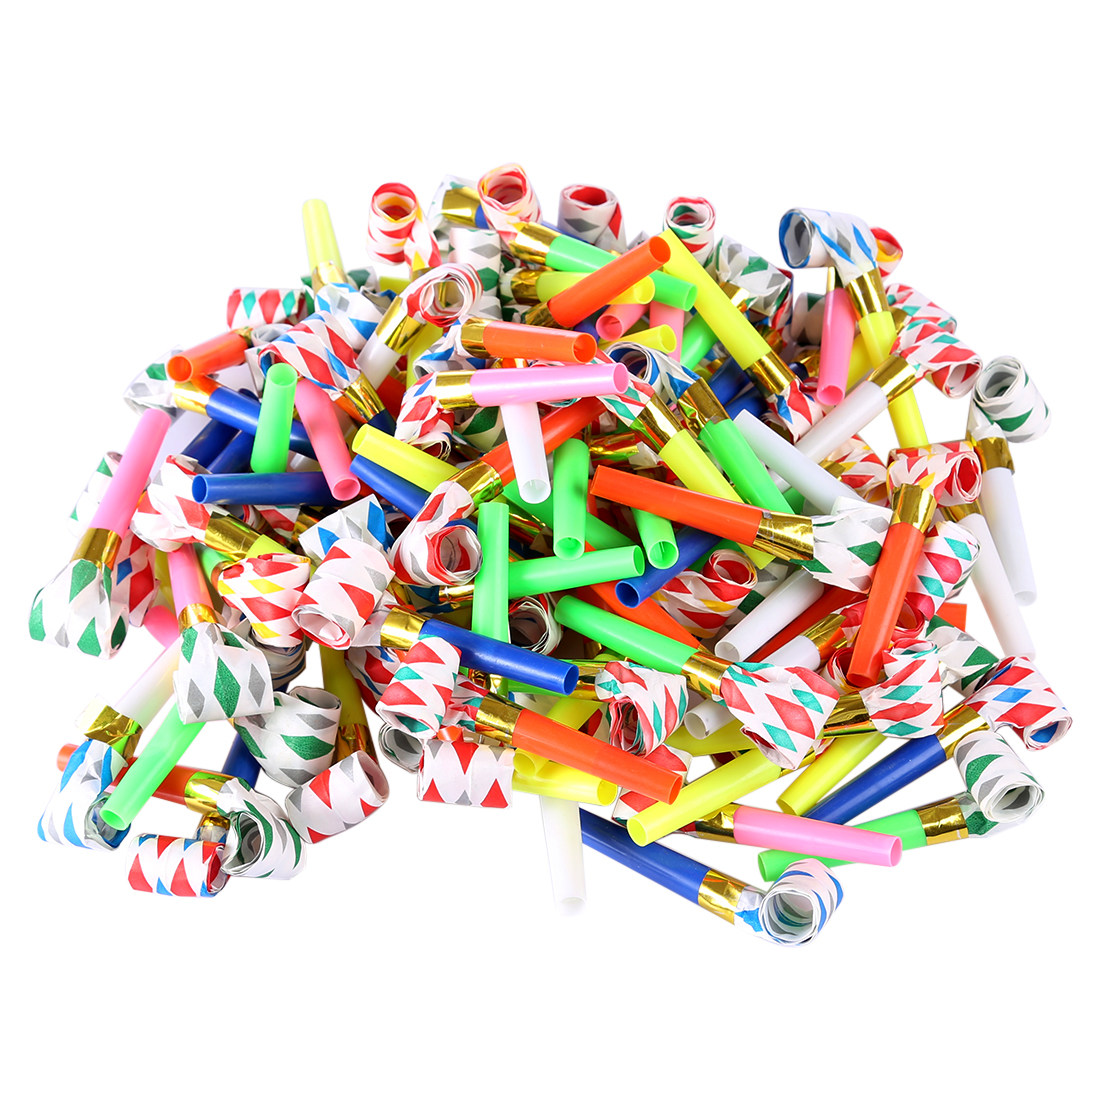 100pcs 6cm Long Music Blowouts Whistles Toys Noisemakers For Children Birthday Party Halloween Toys For Kids